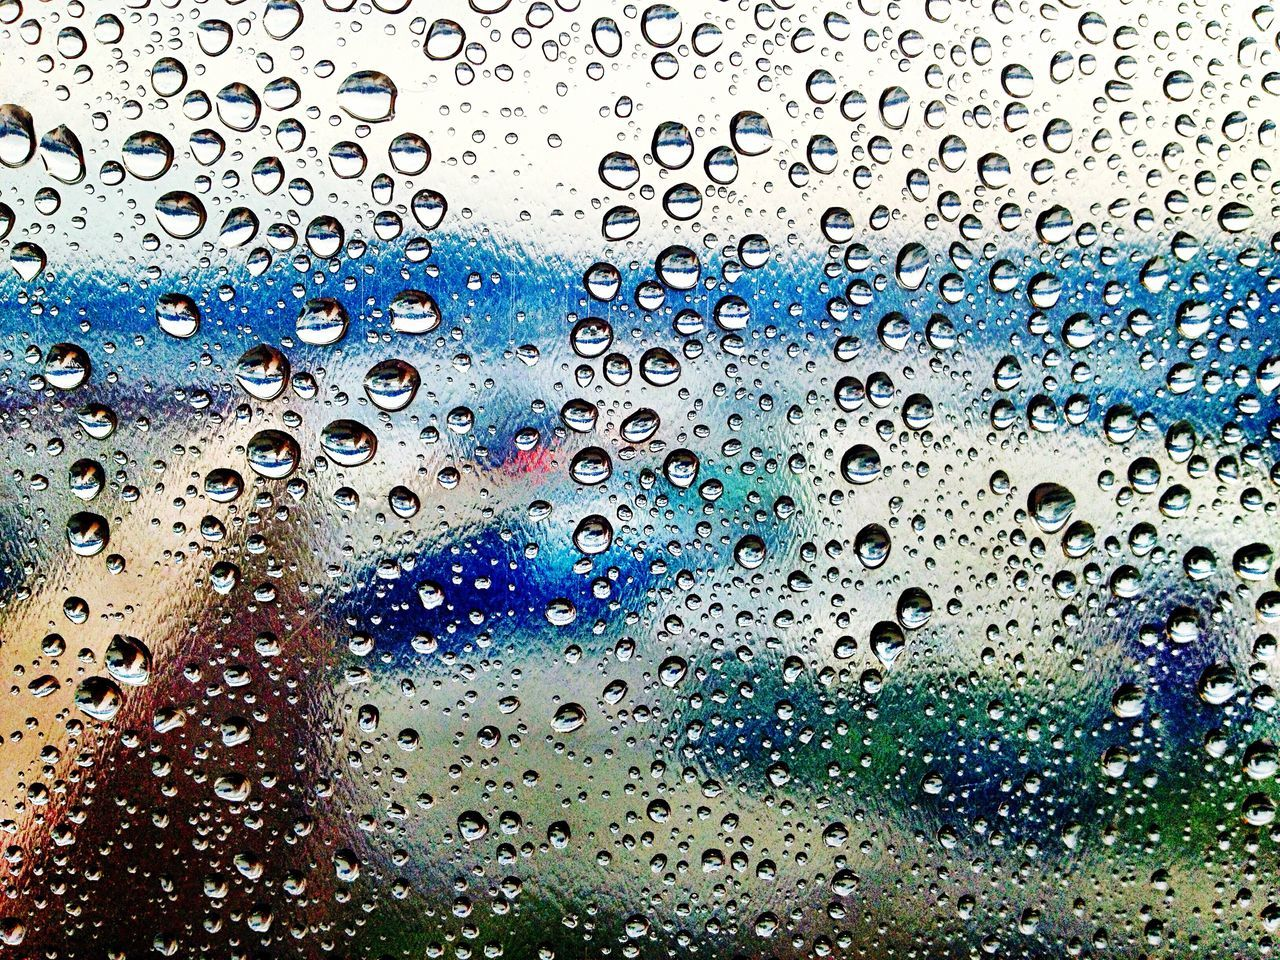 Rain Drop Close-up Window No People Water Backgrounds Full Frame Wet Nature Sky RainDrop Day Outdoors